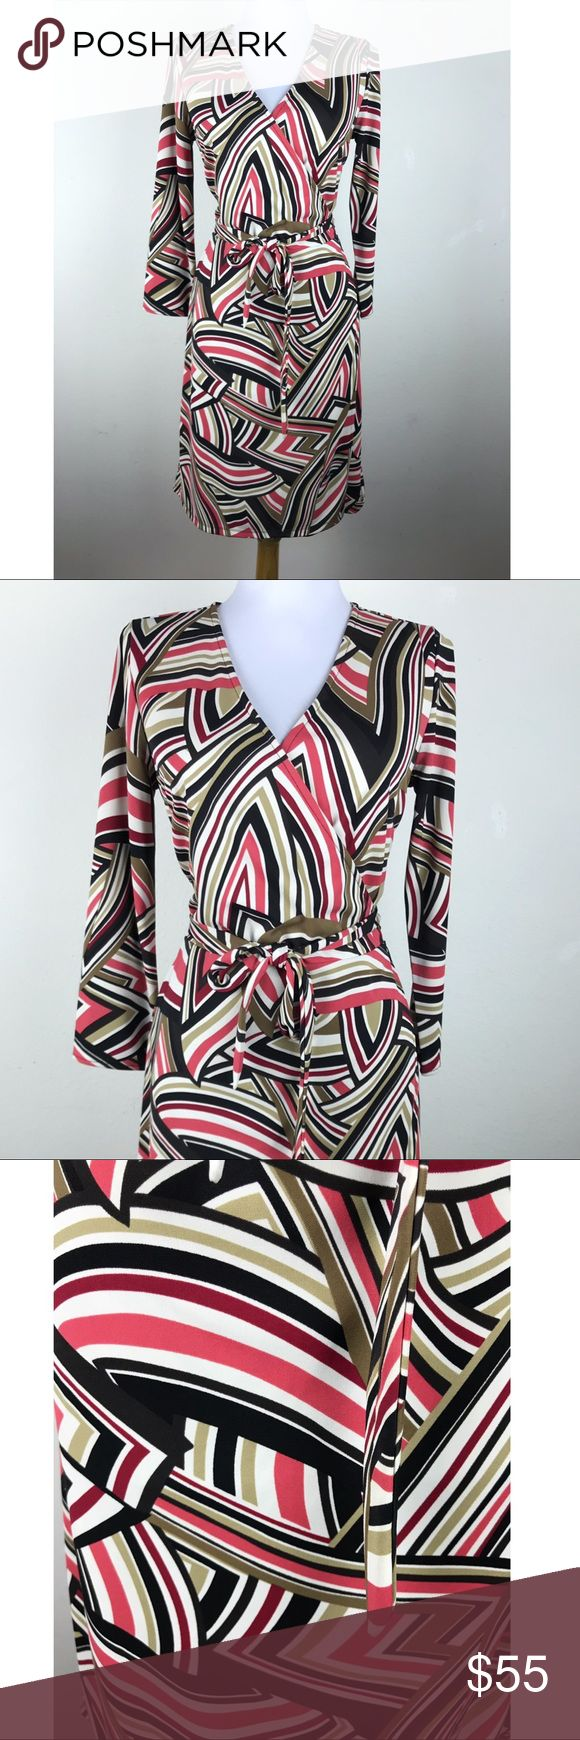 I just added this listing on Poshmark: Ann Taylor Loft Wrap Dress Size 6 Chevron Swirled. #shopmycloset #poshmark #fashion #shopping #style #forsale #Ann Taylor Loft #Dresses & Skirts